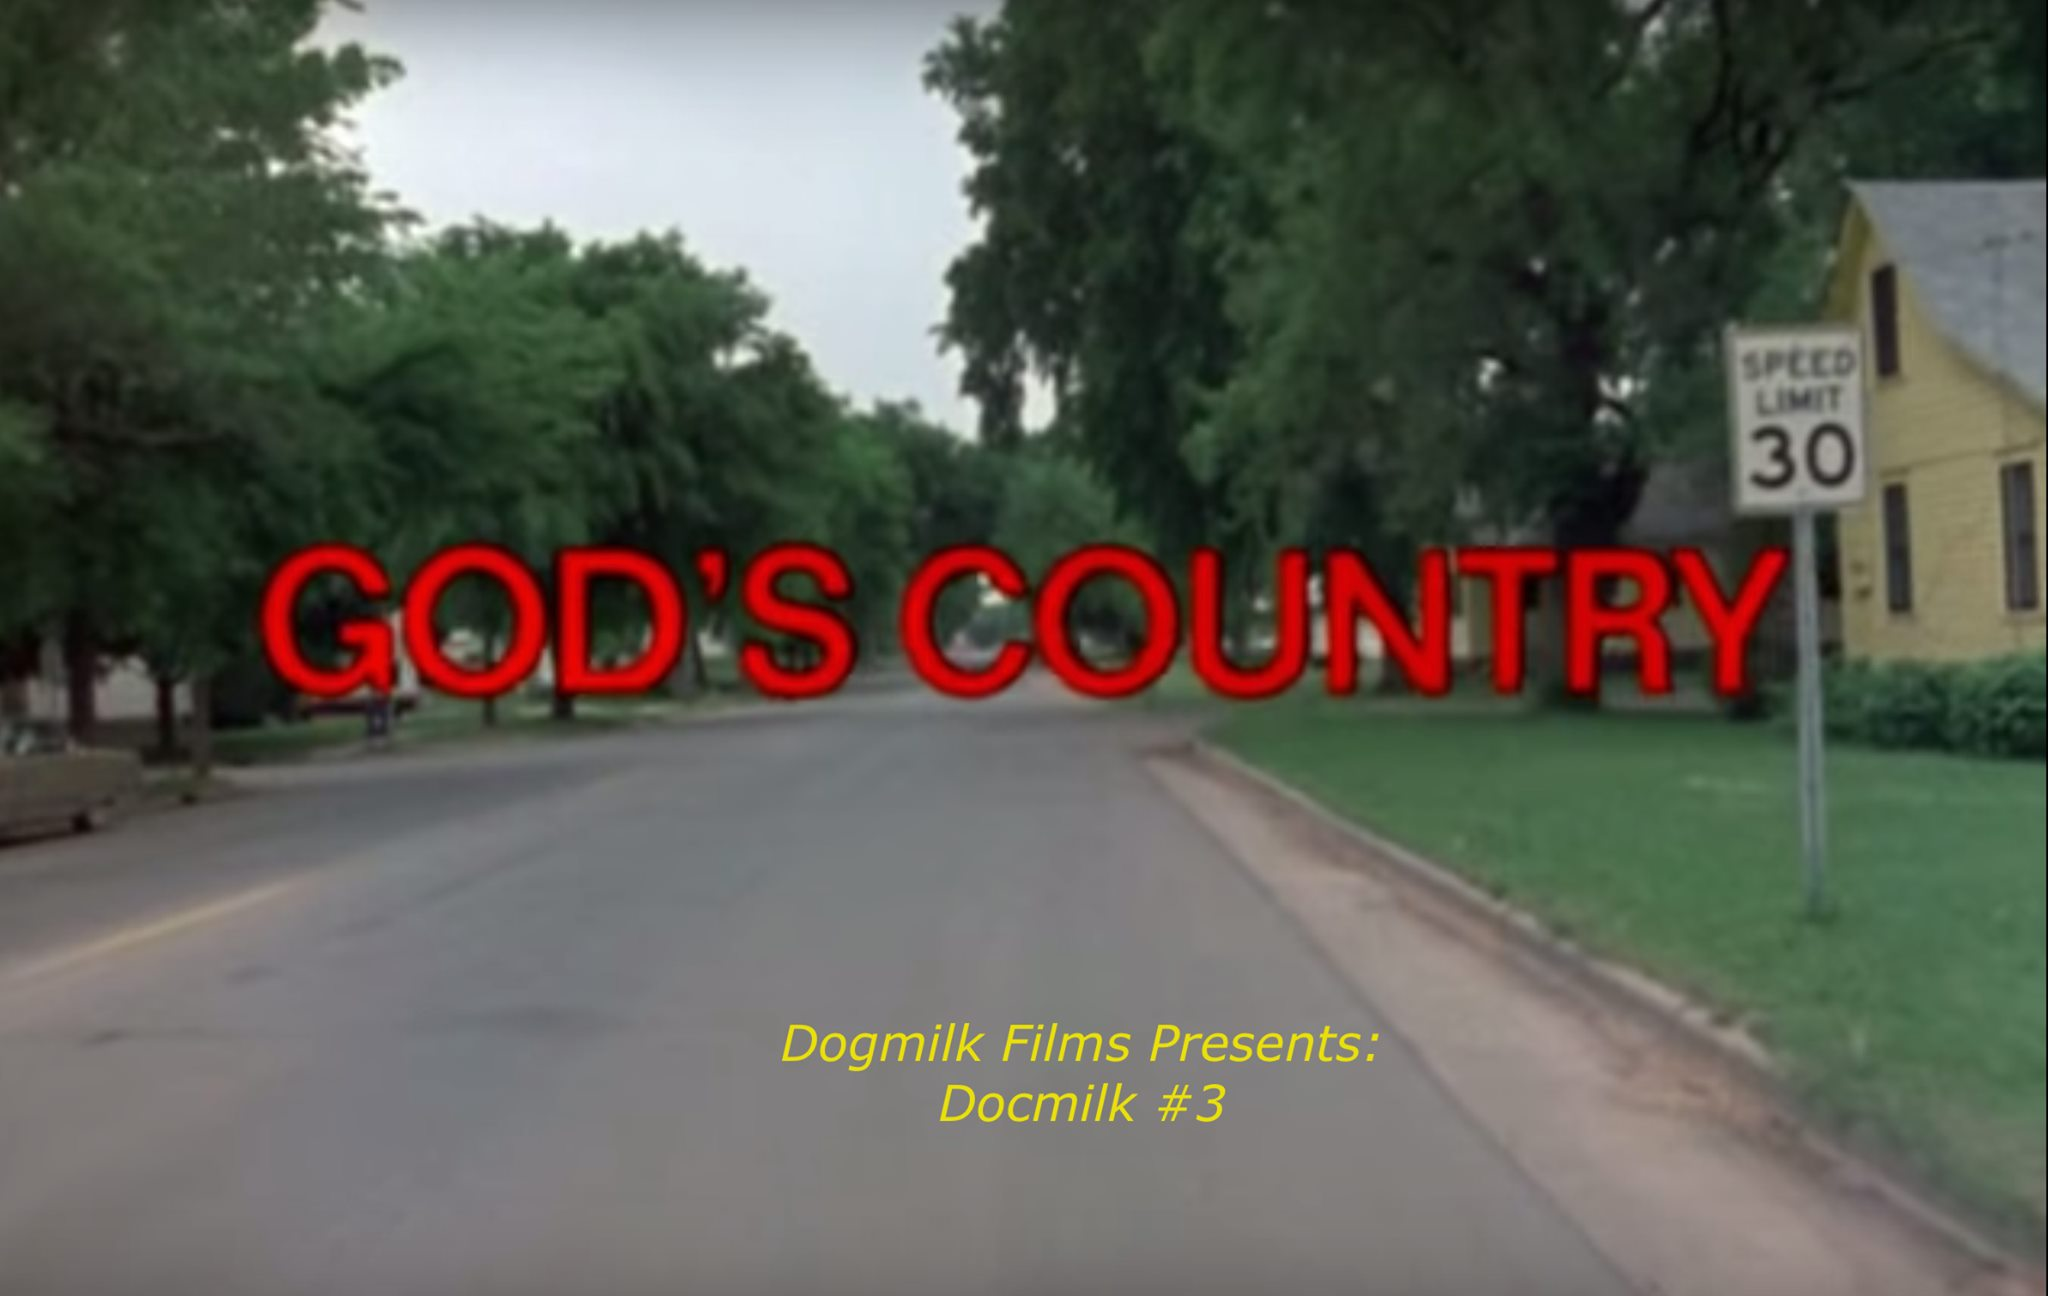 Dogmilk presents Docmilk #3: God's Country